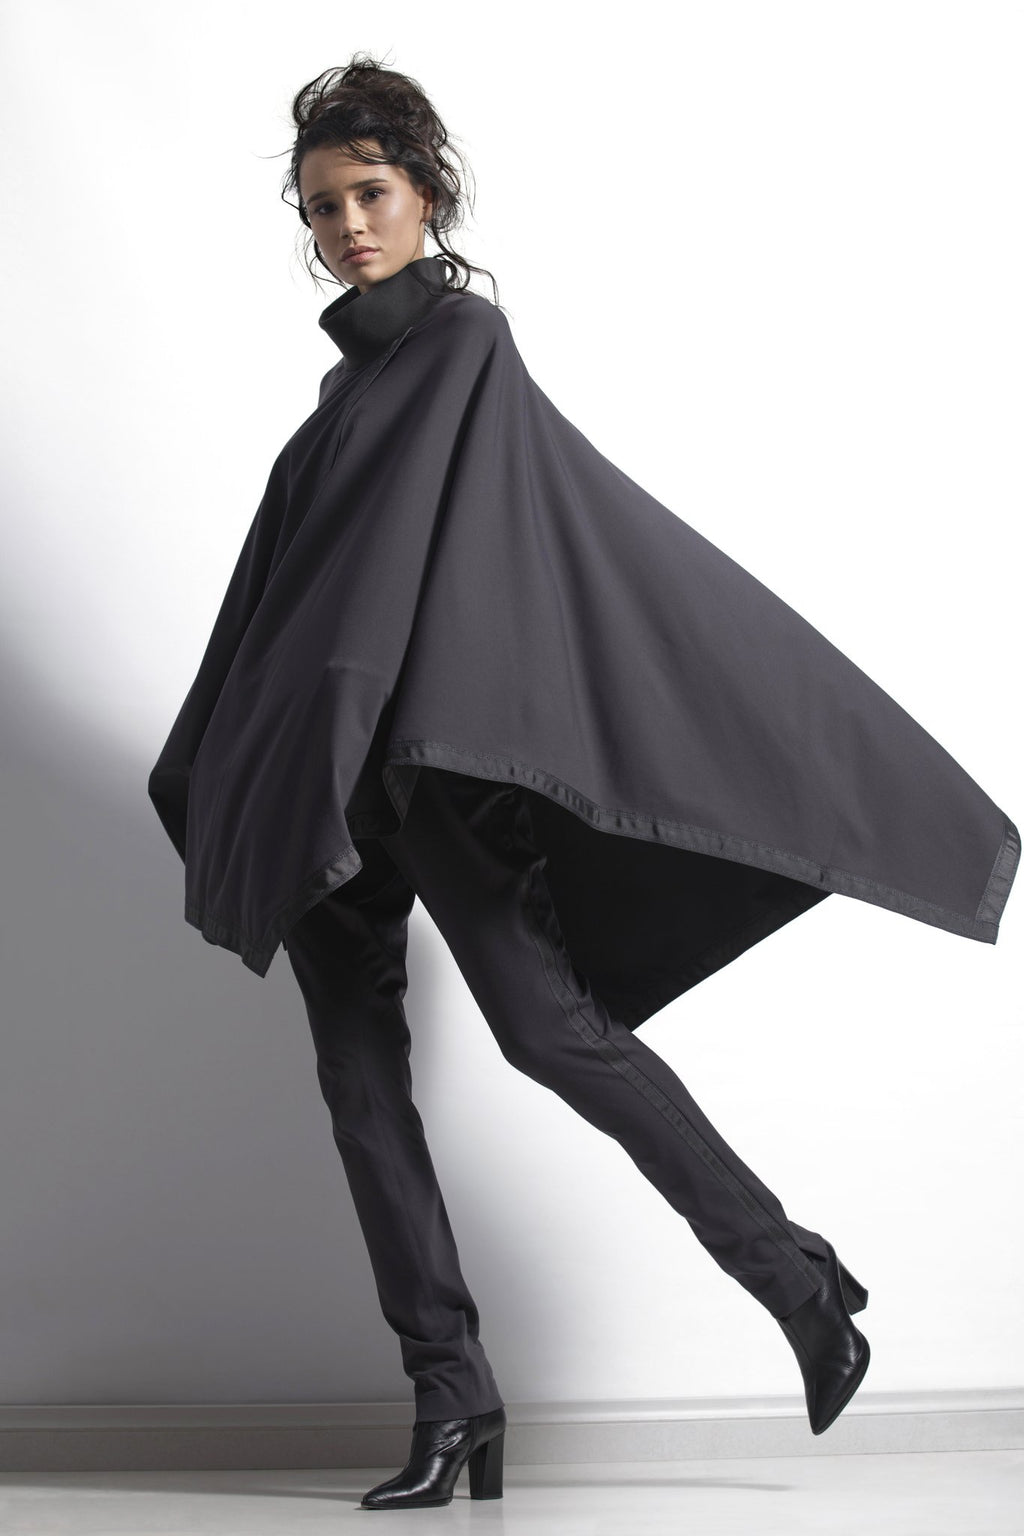 dref-by-d poncho black